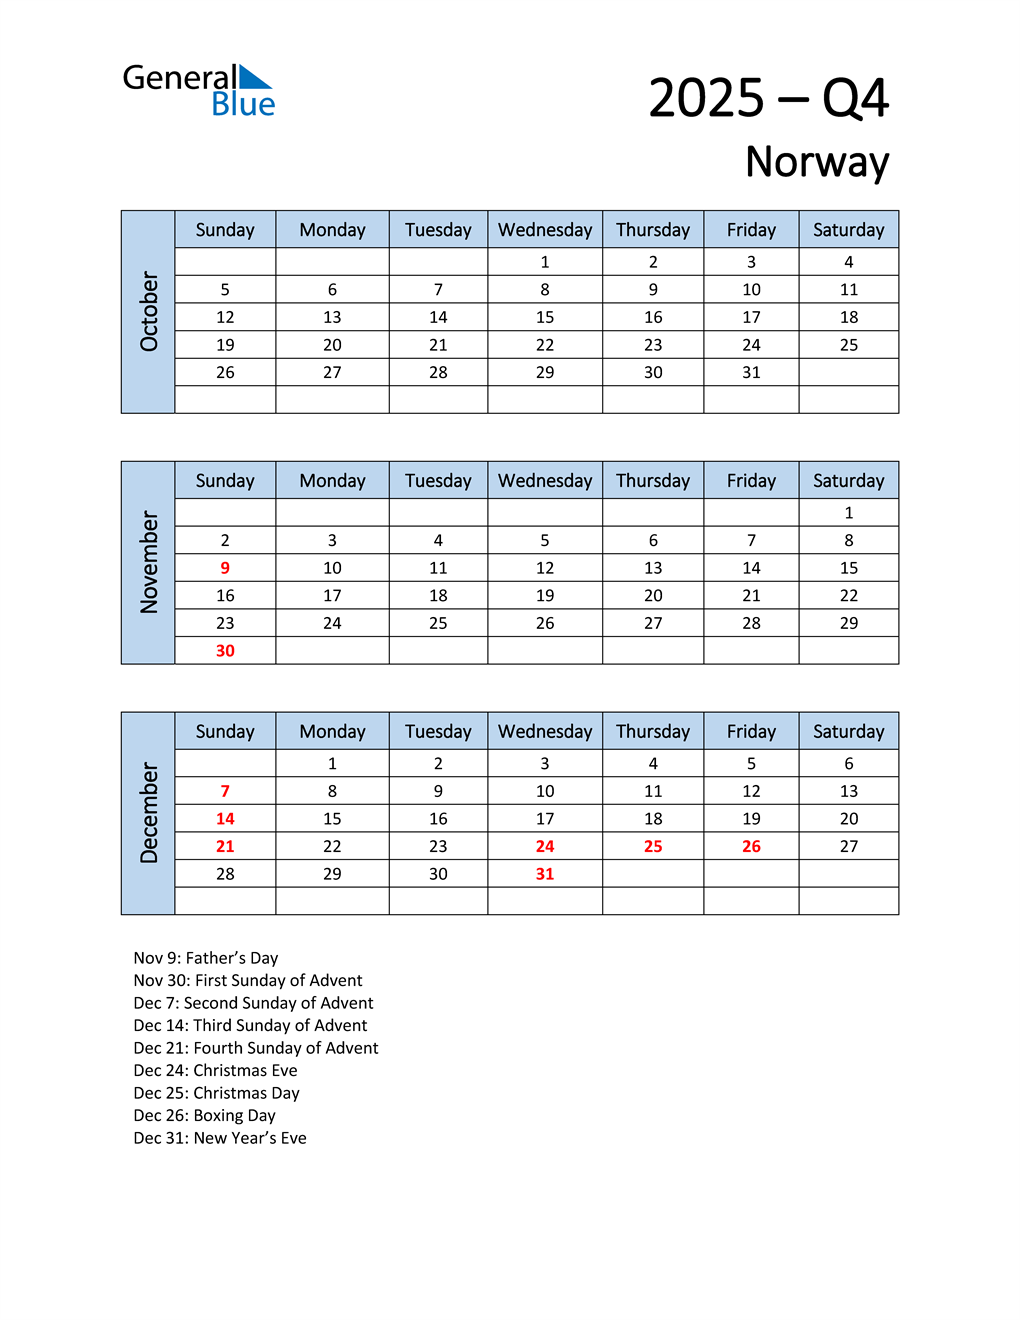 Free Q4 2025 Calendar for Norway